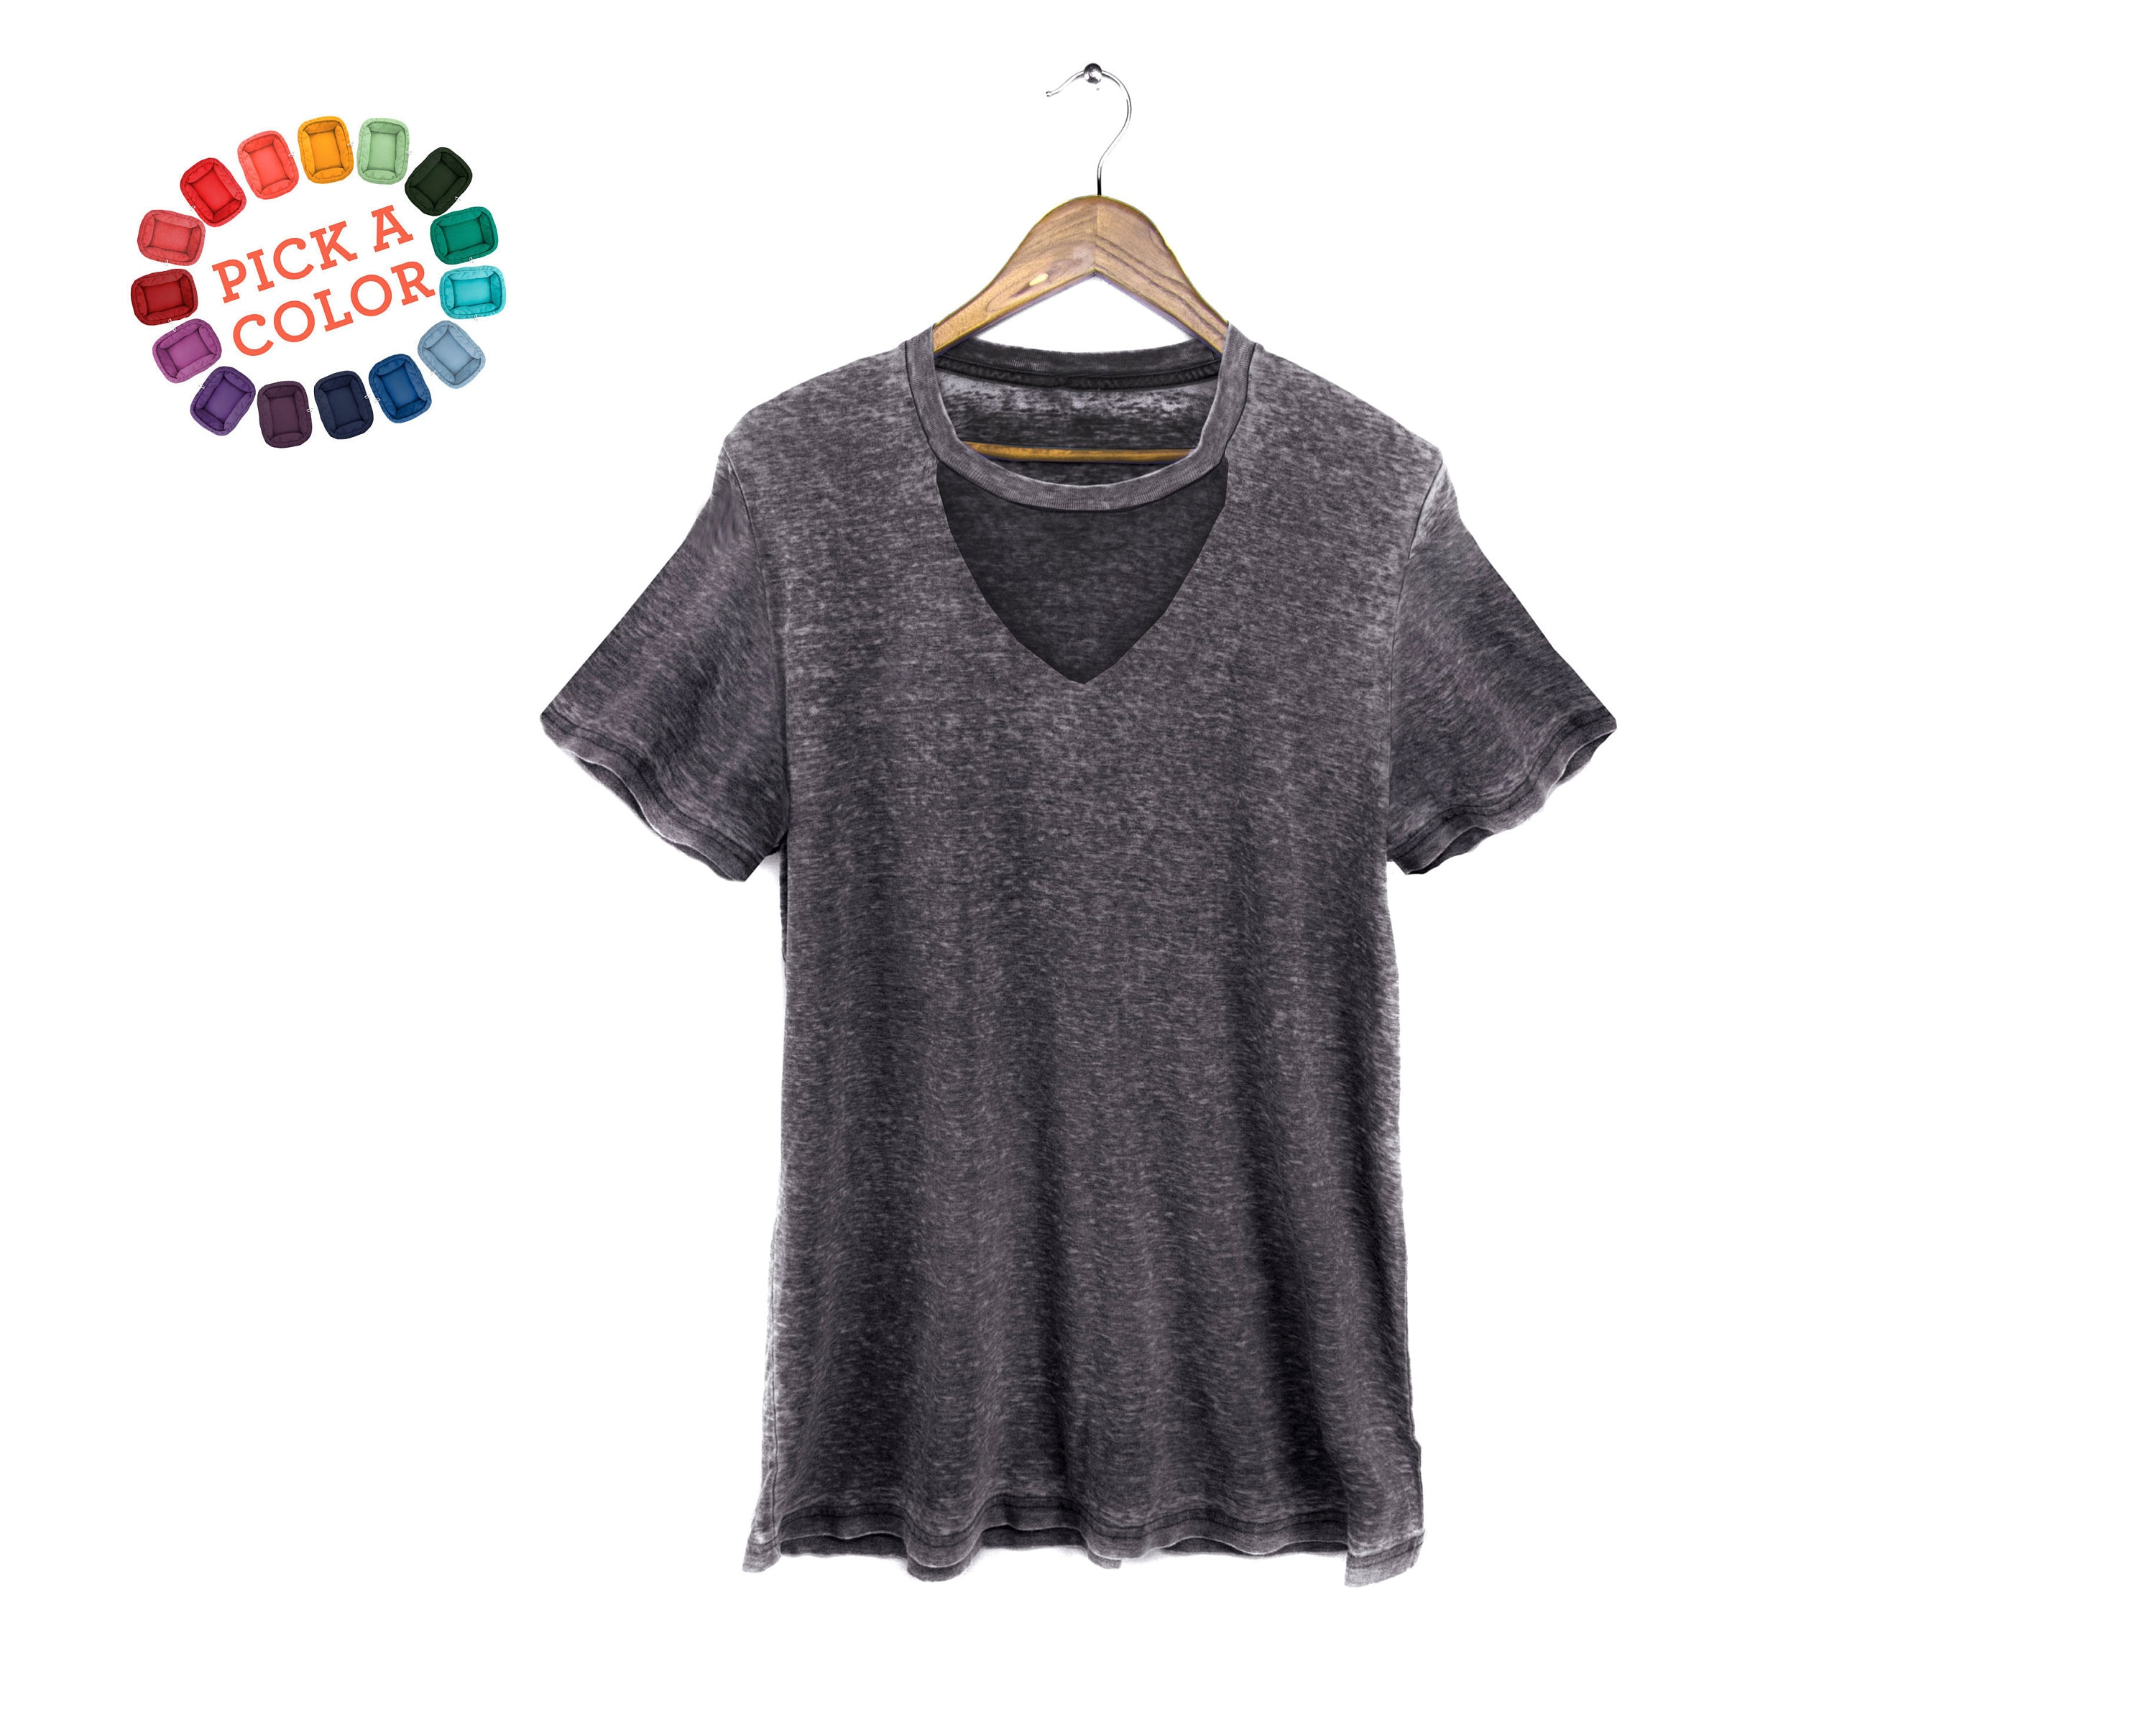 Cutout Wide V Neck Tee Choker T shirt, Loose Fit Tshirt, Keyhole Top in Grey Burnout or Pick a Custom Color Women's Size S 2XL